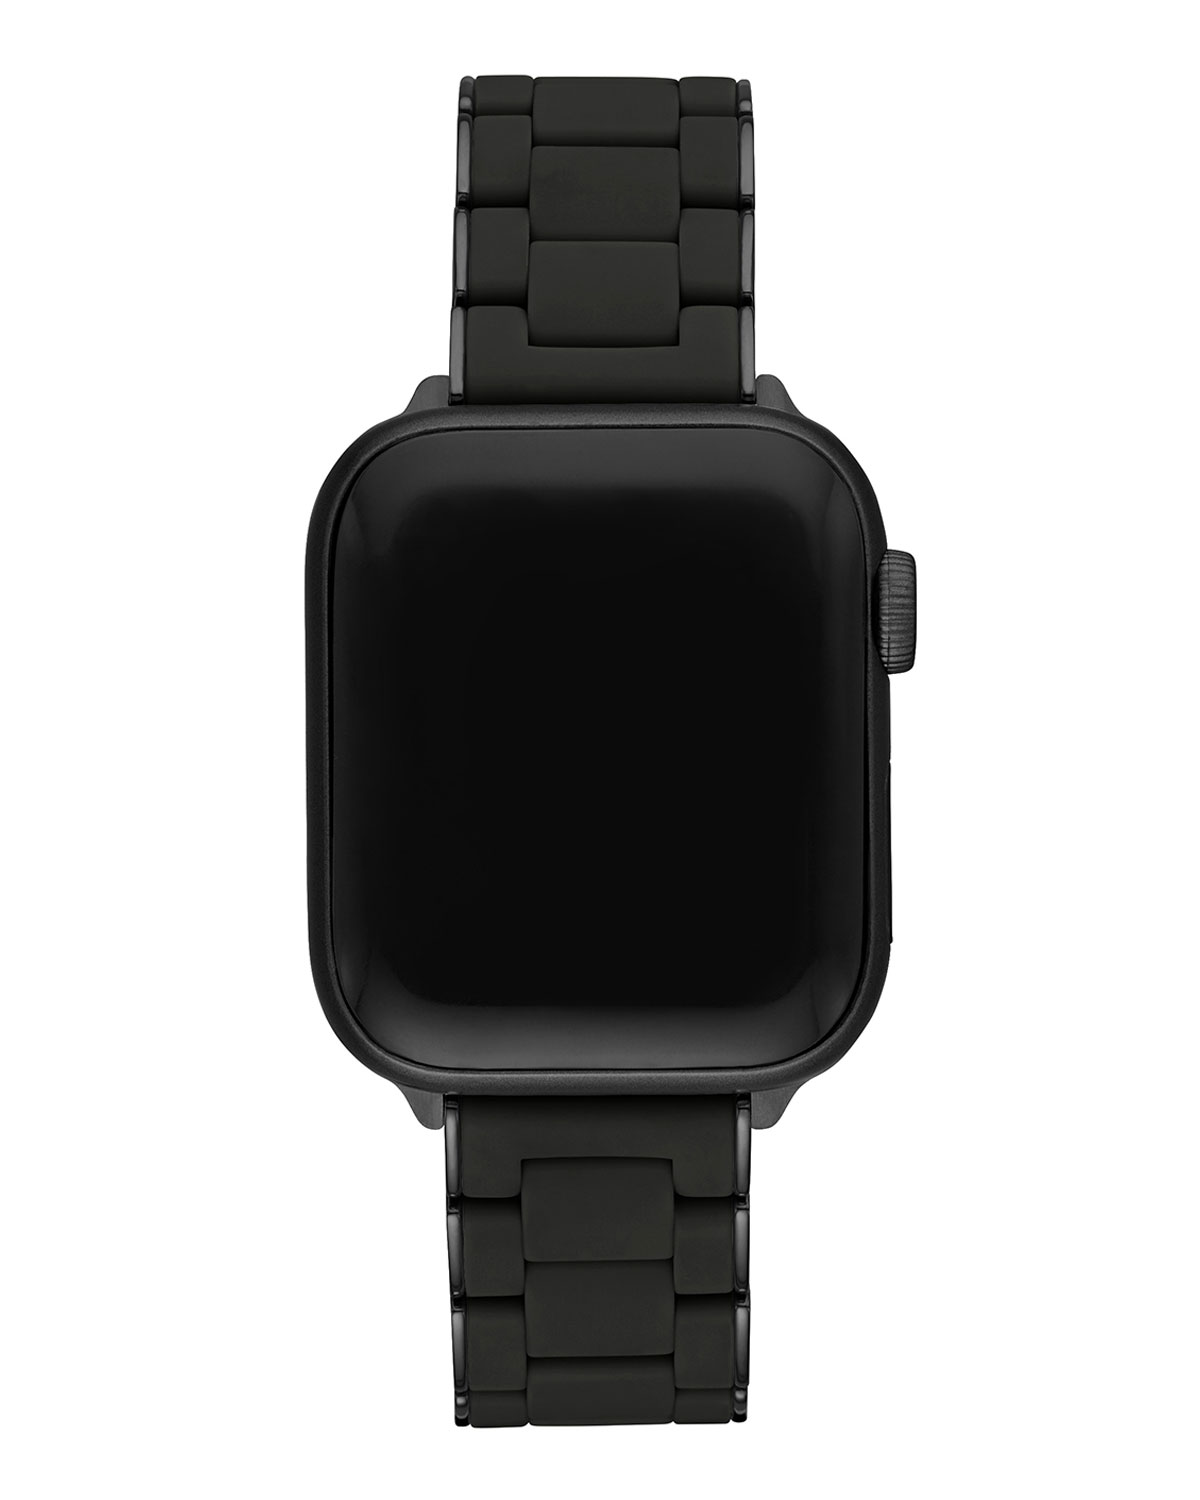 38/40mm Silicone-Wrapped Bracelet Band for Apple Watch